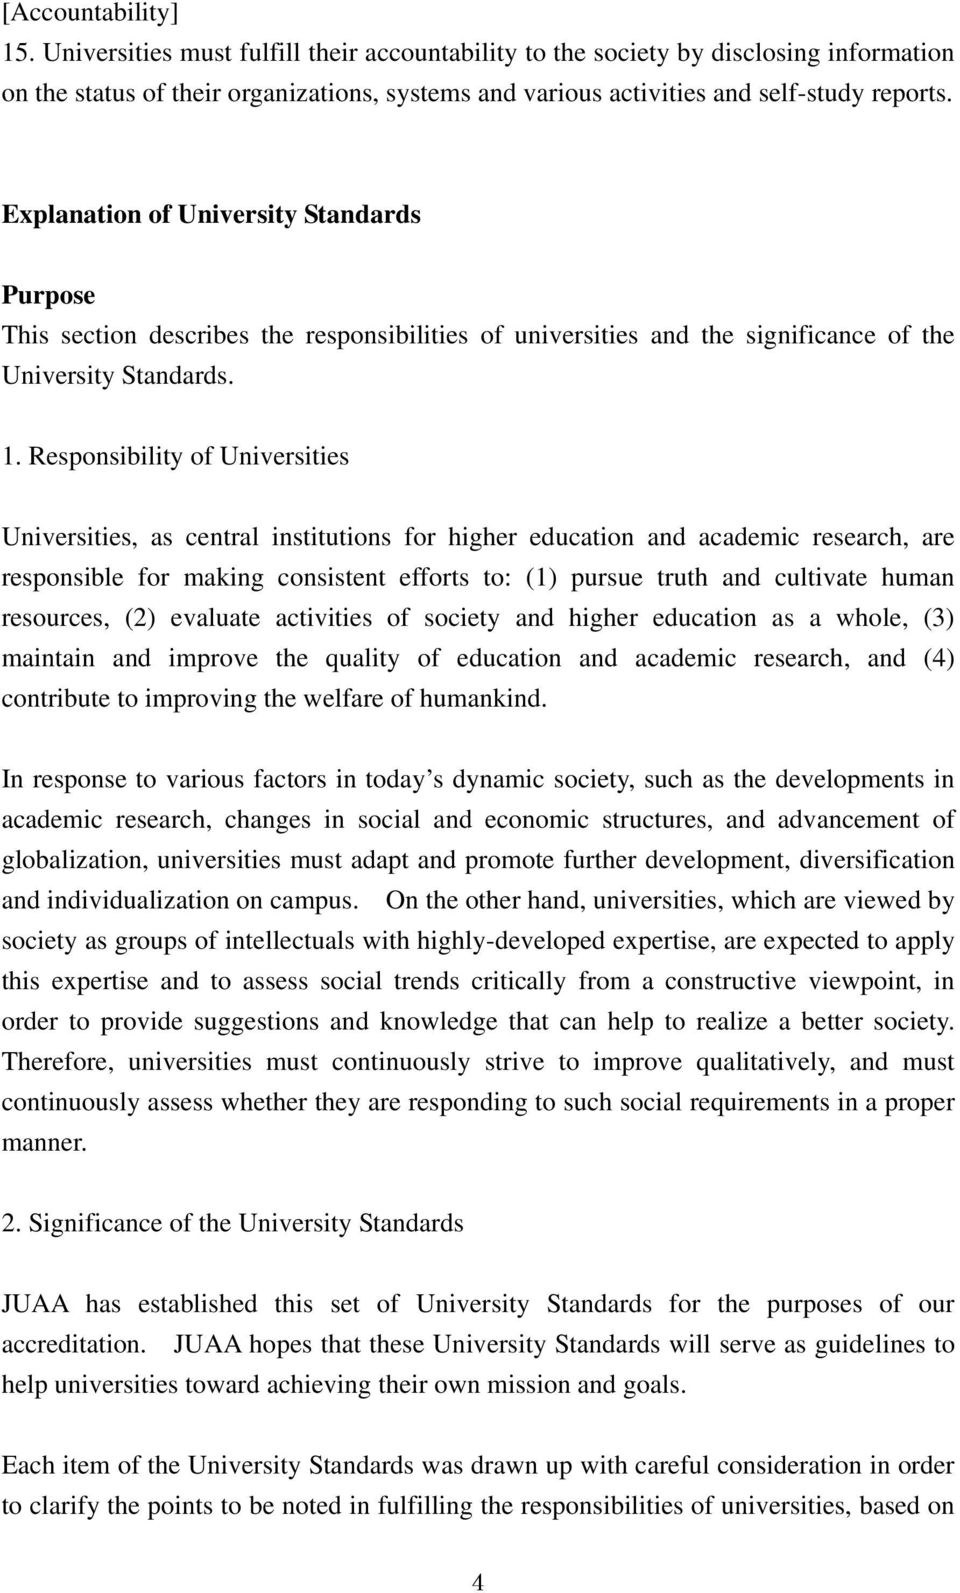 Explanation of University Standards Purpose This section describes the responsibilities of universities and the significance of the University Standards. 1.